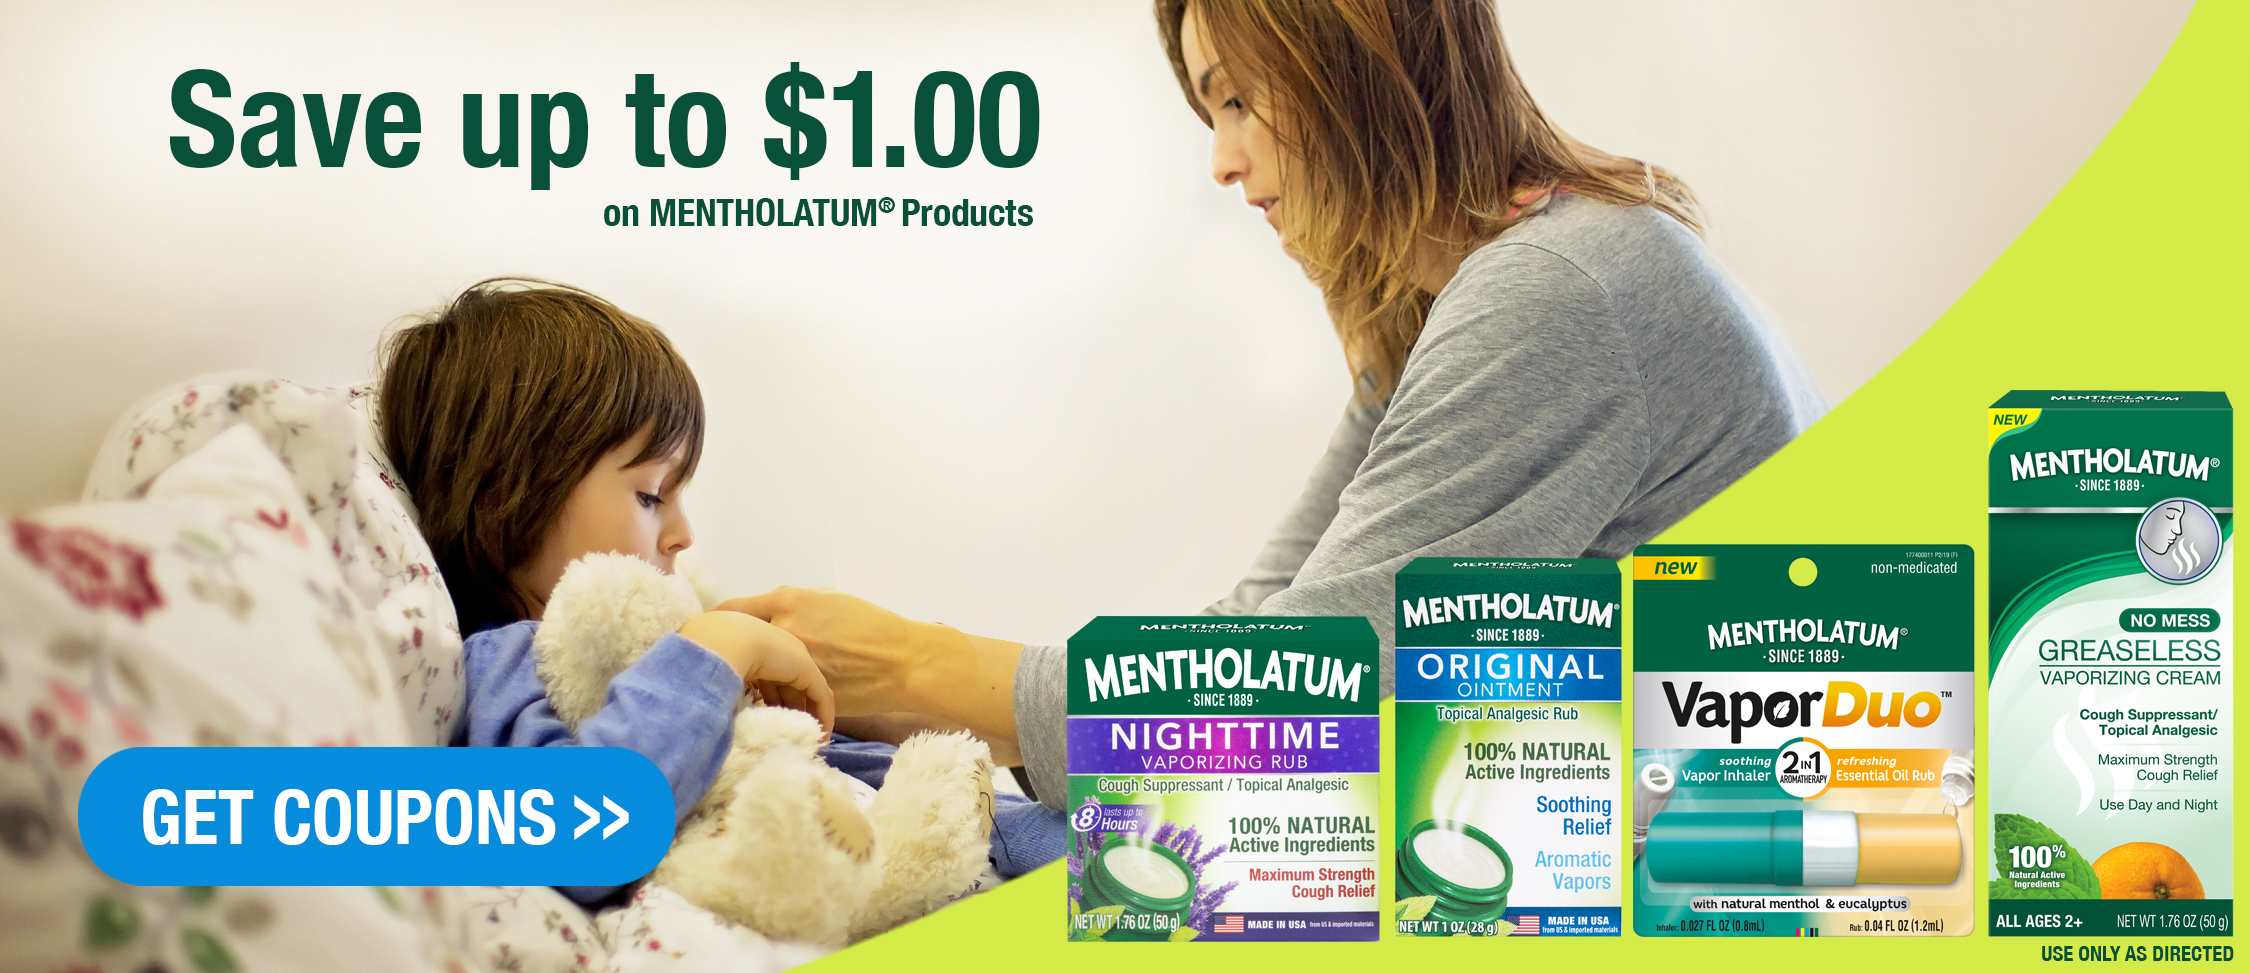 Save $1 off Mentholatum Products